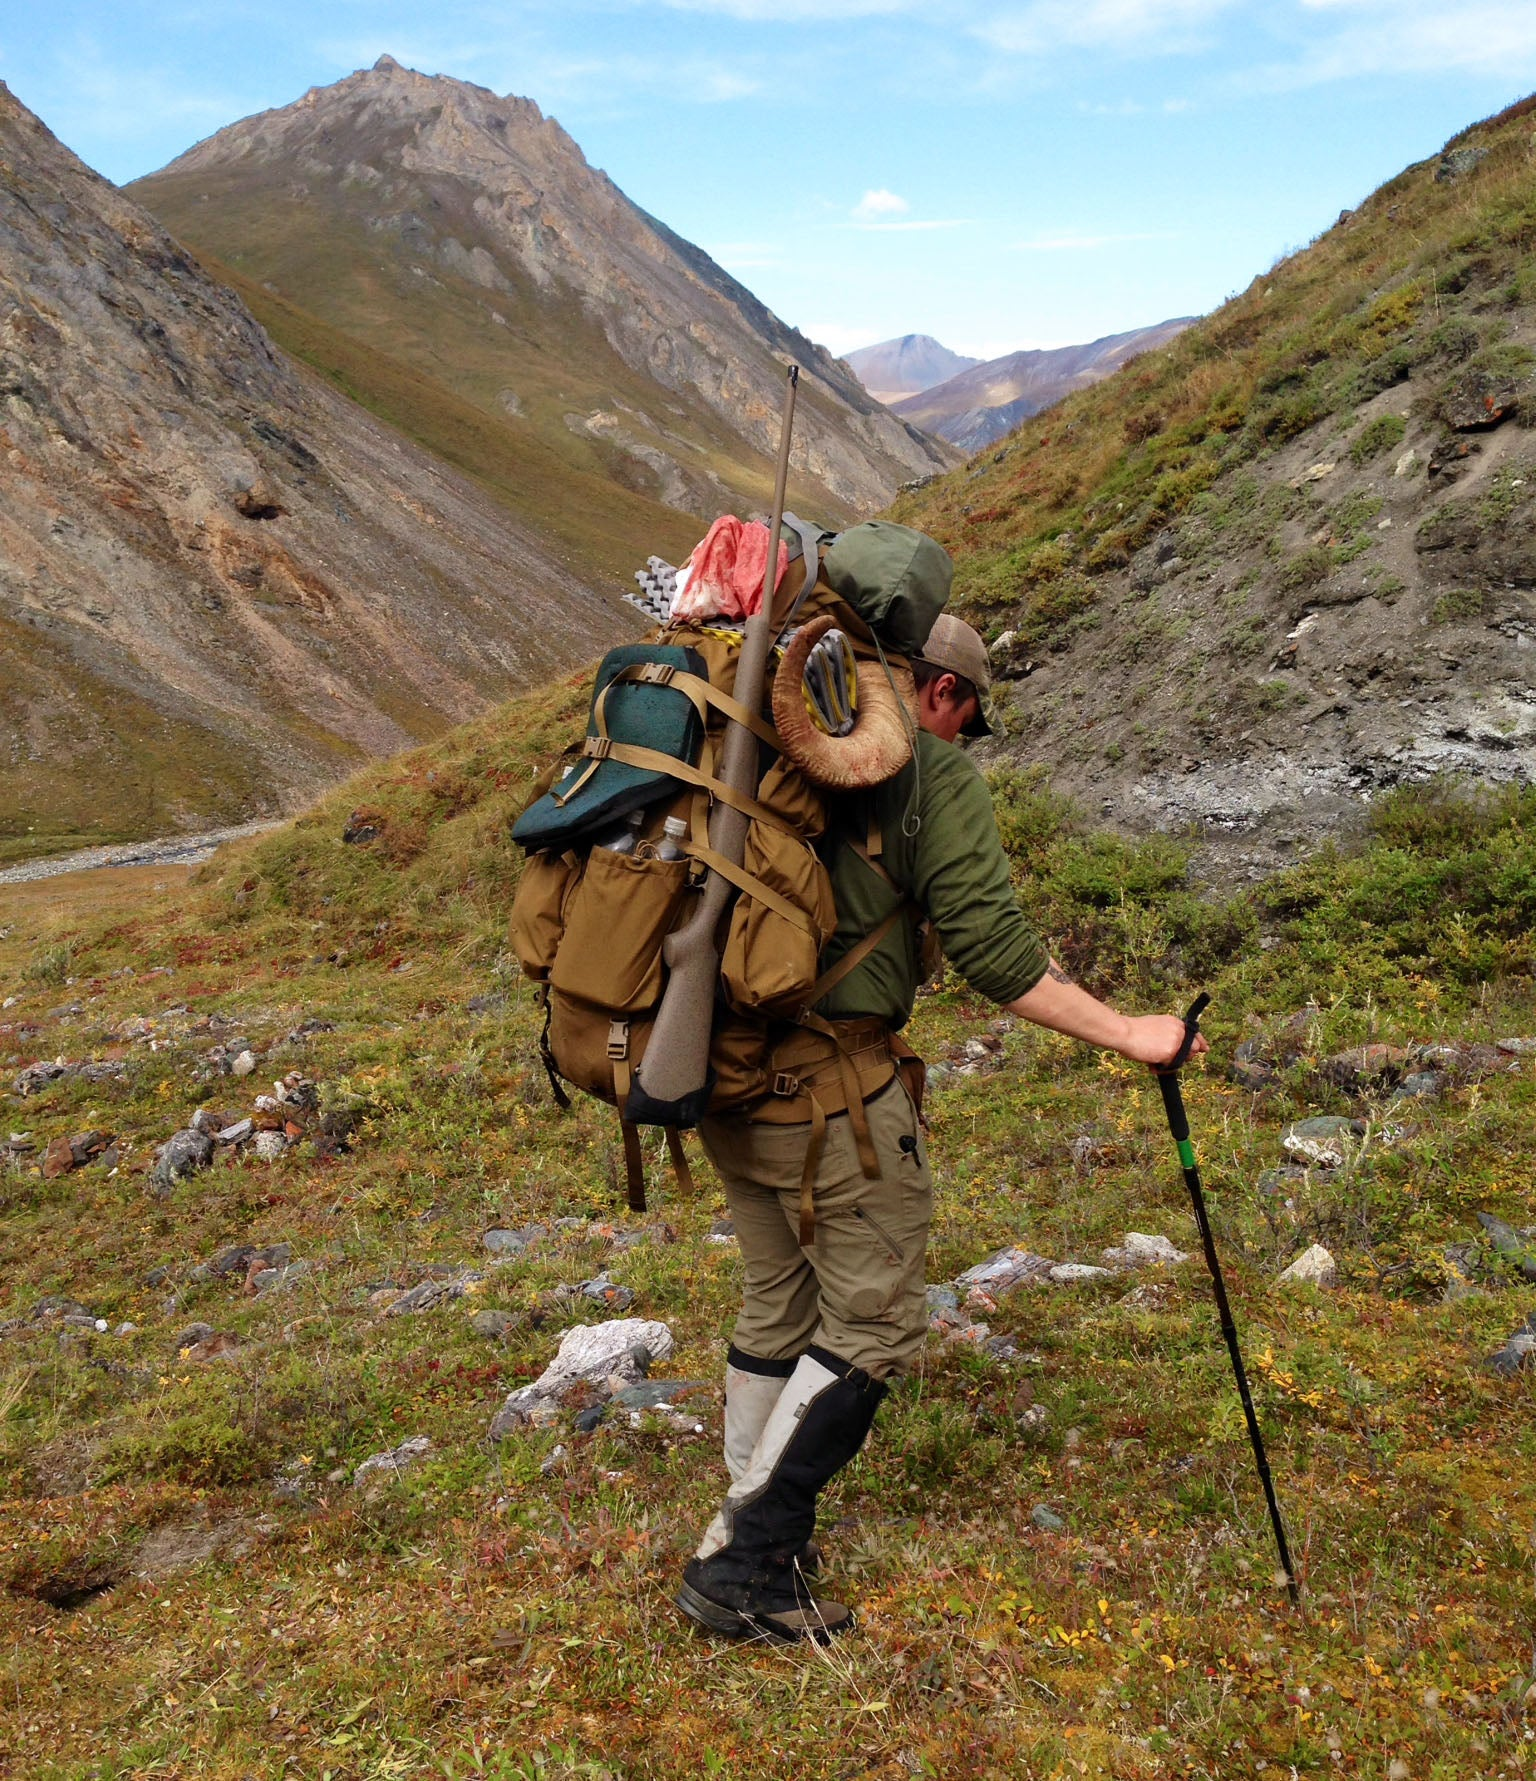 Ditch the Camo: How to Mix, Match, and Bargain Hunt for the Best Mountain Hunting Clothes